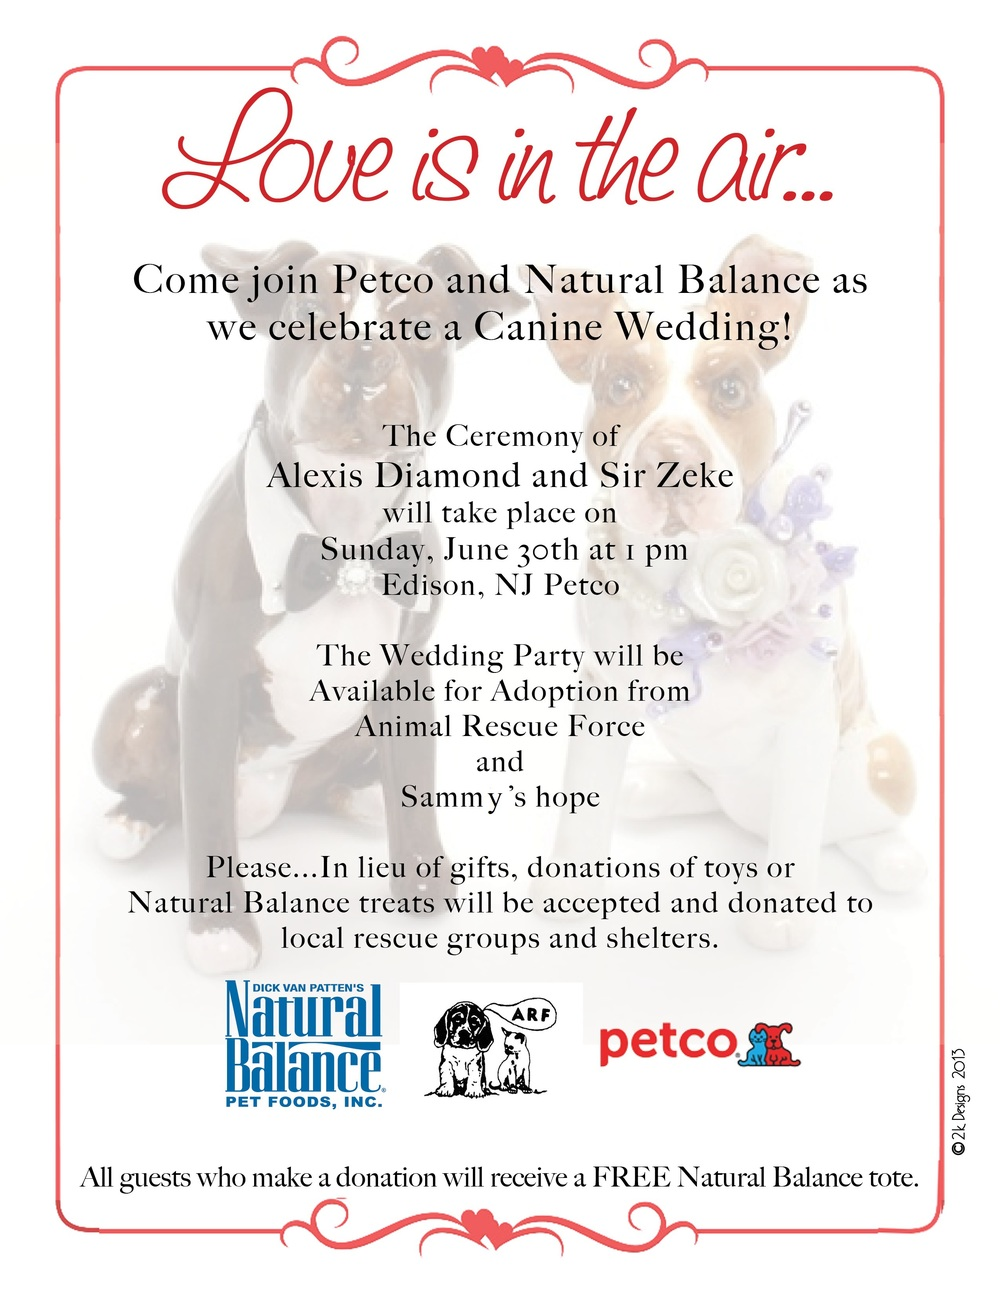 Join us for the Wedding!